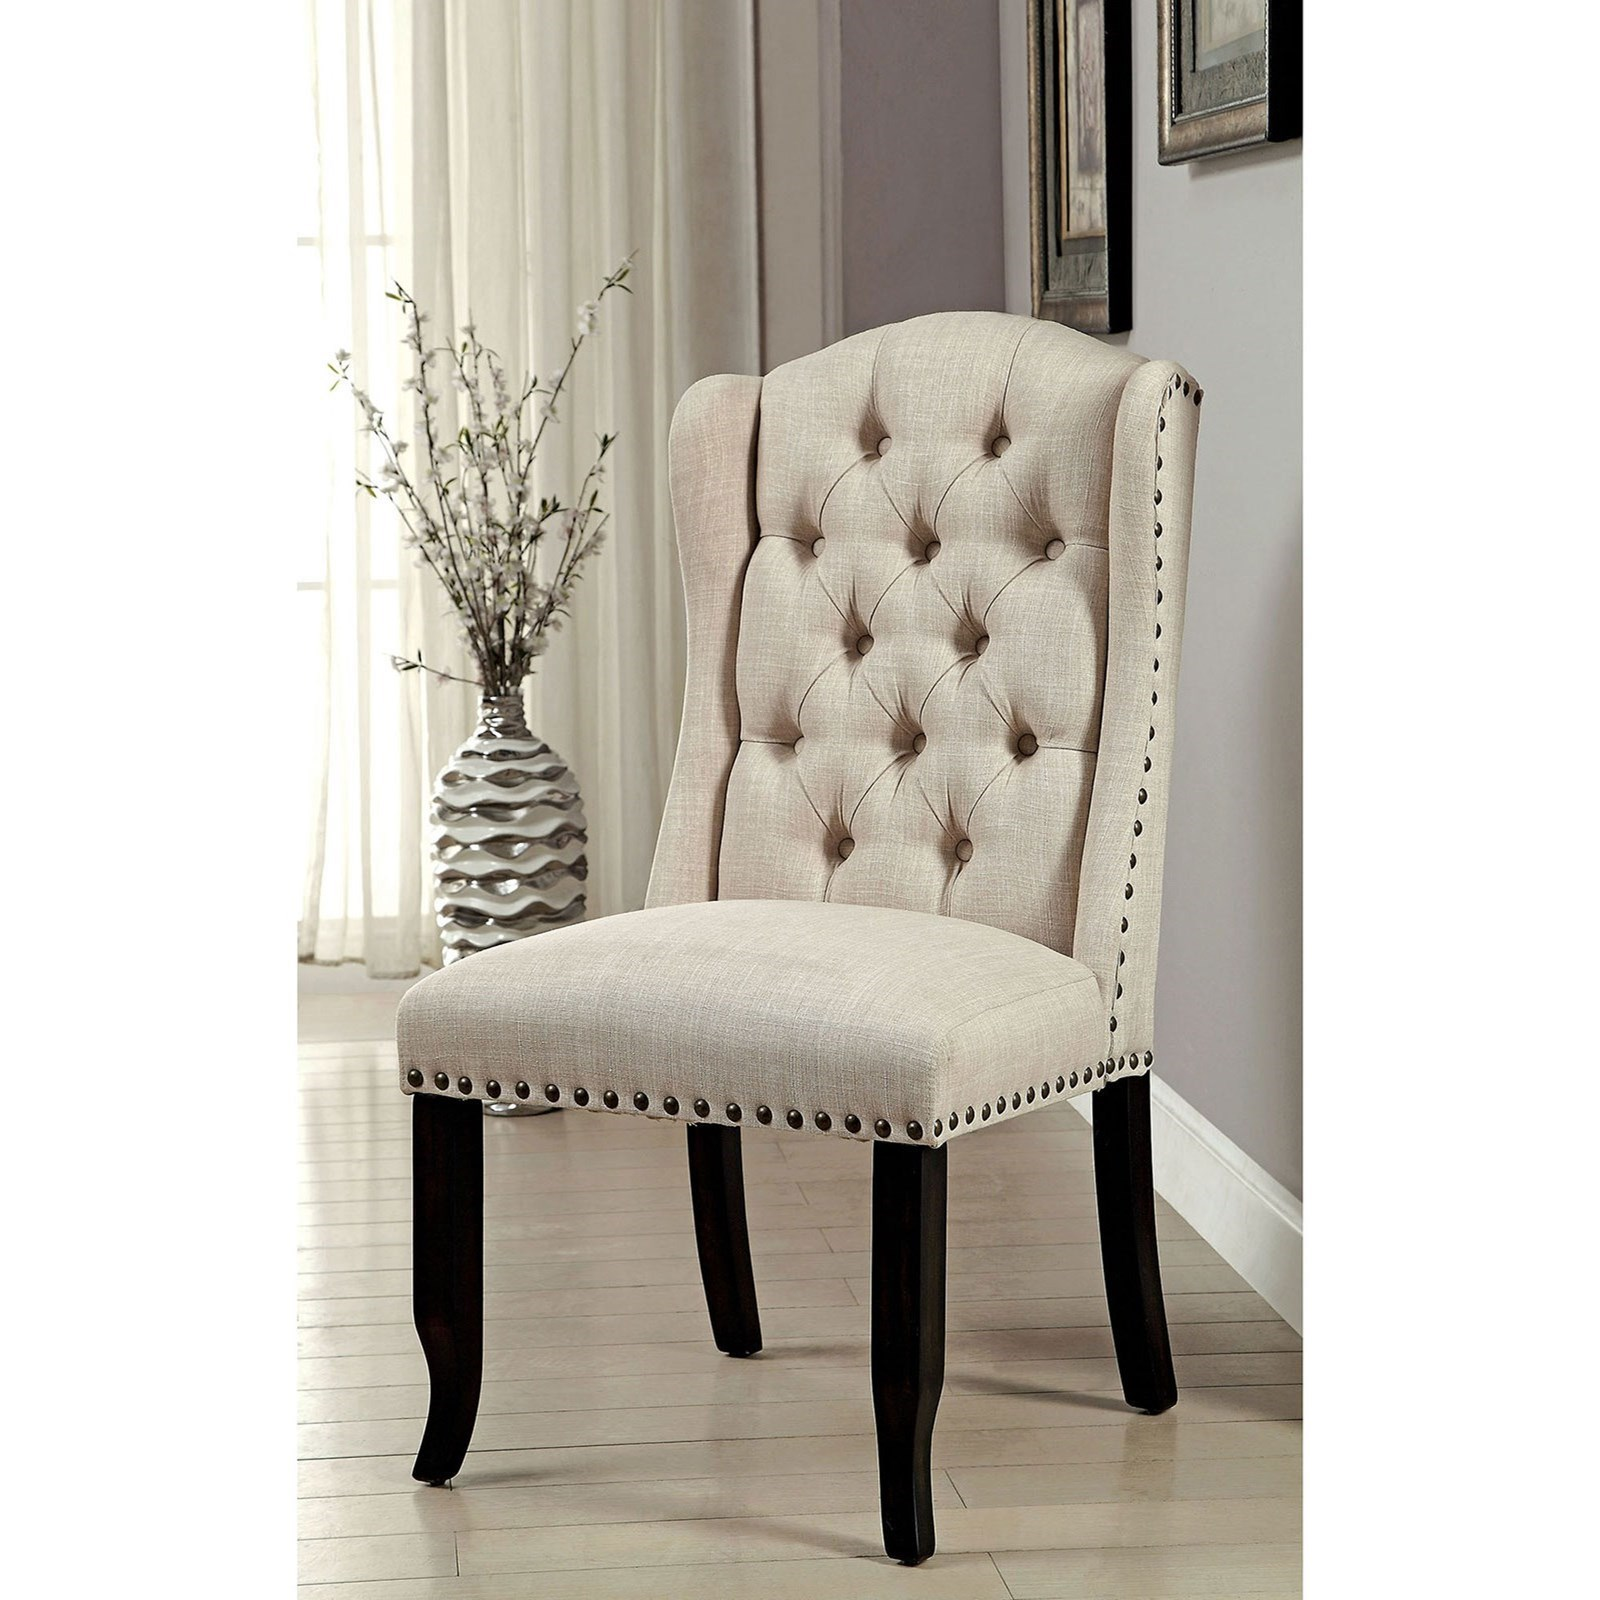 Furniture Of America Sania I Cm3324bk Sc 2pk Transitional Side Chair 2 Pack With Tufted Back And Nailhead Trim Corner Furniture Dining Side Chairs